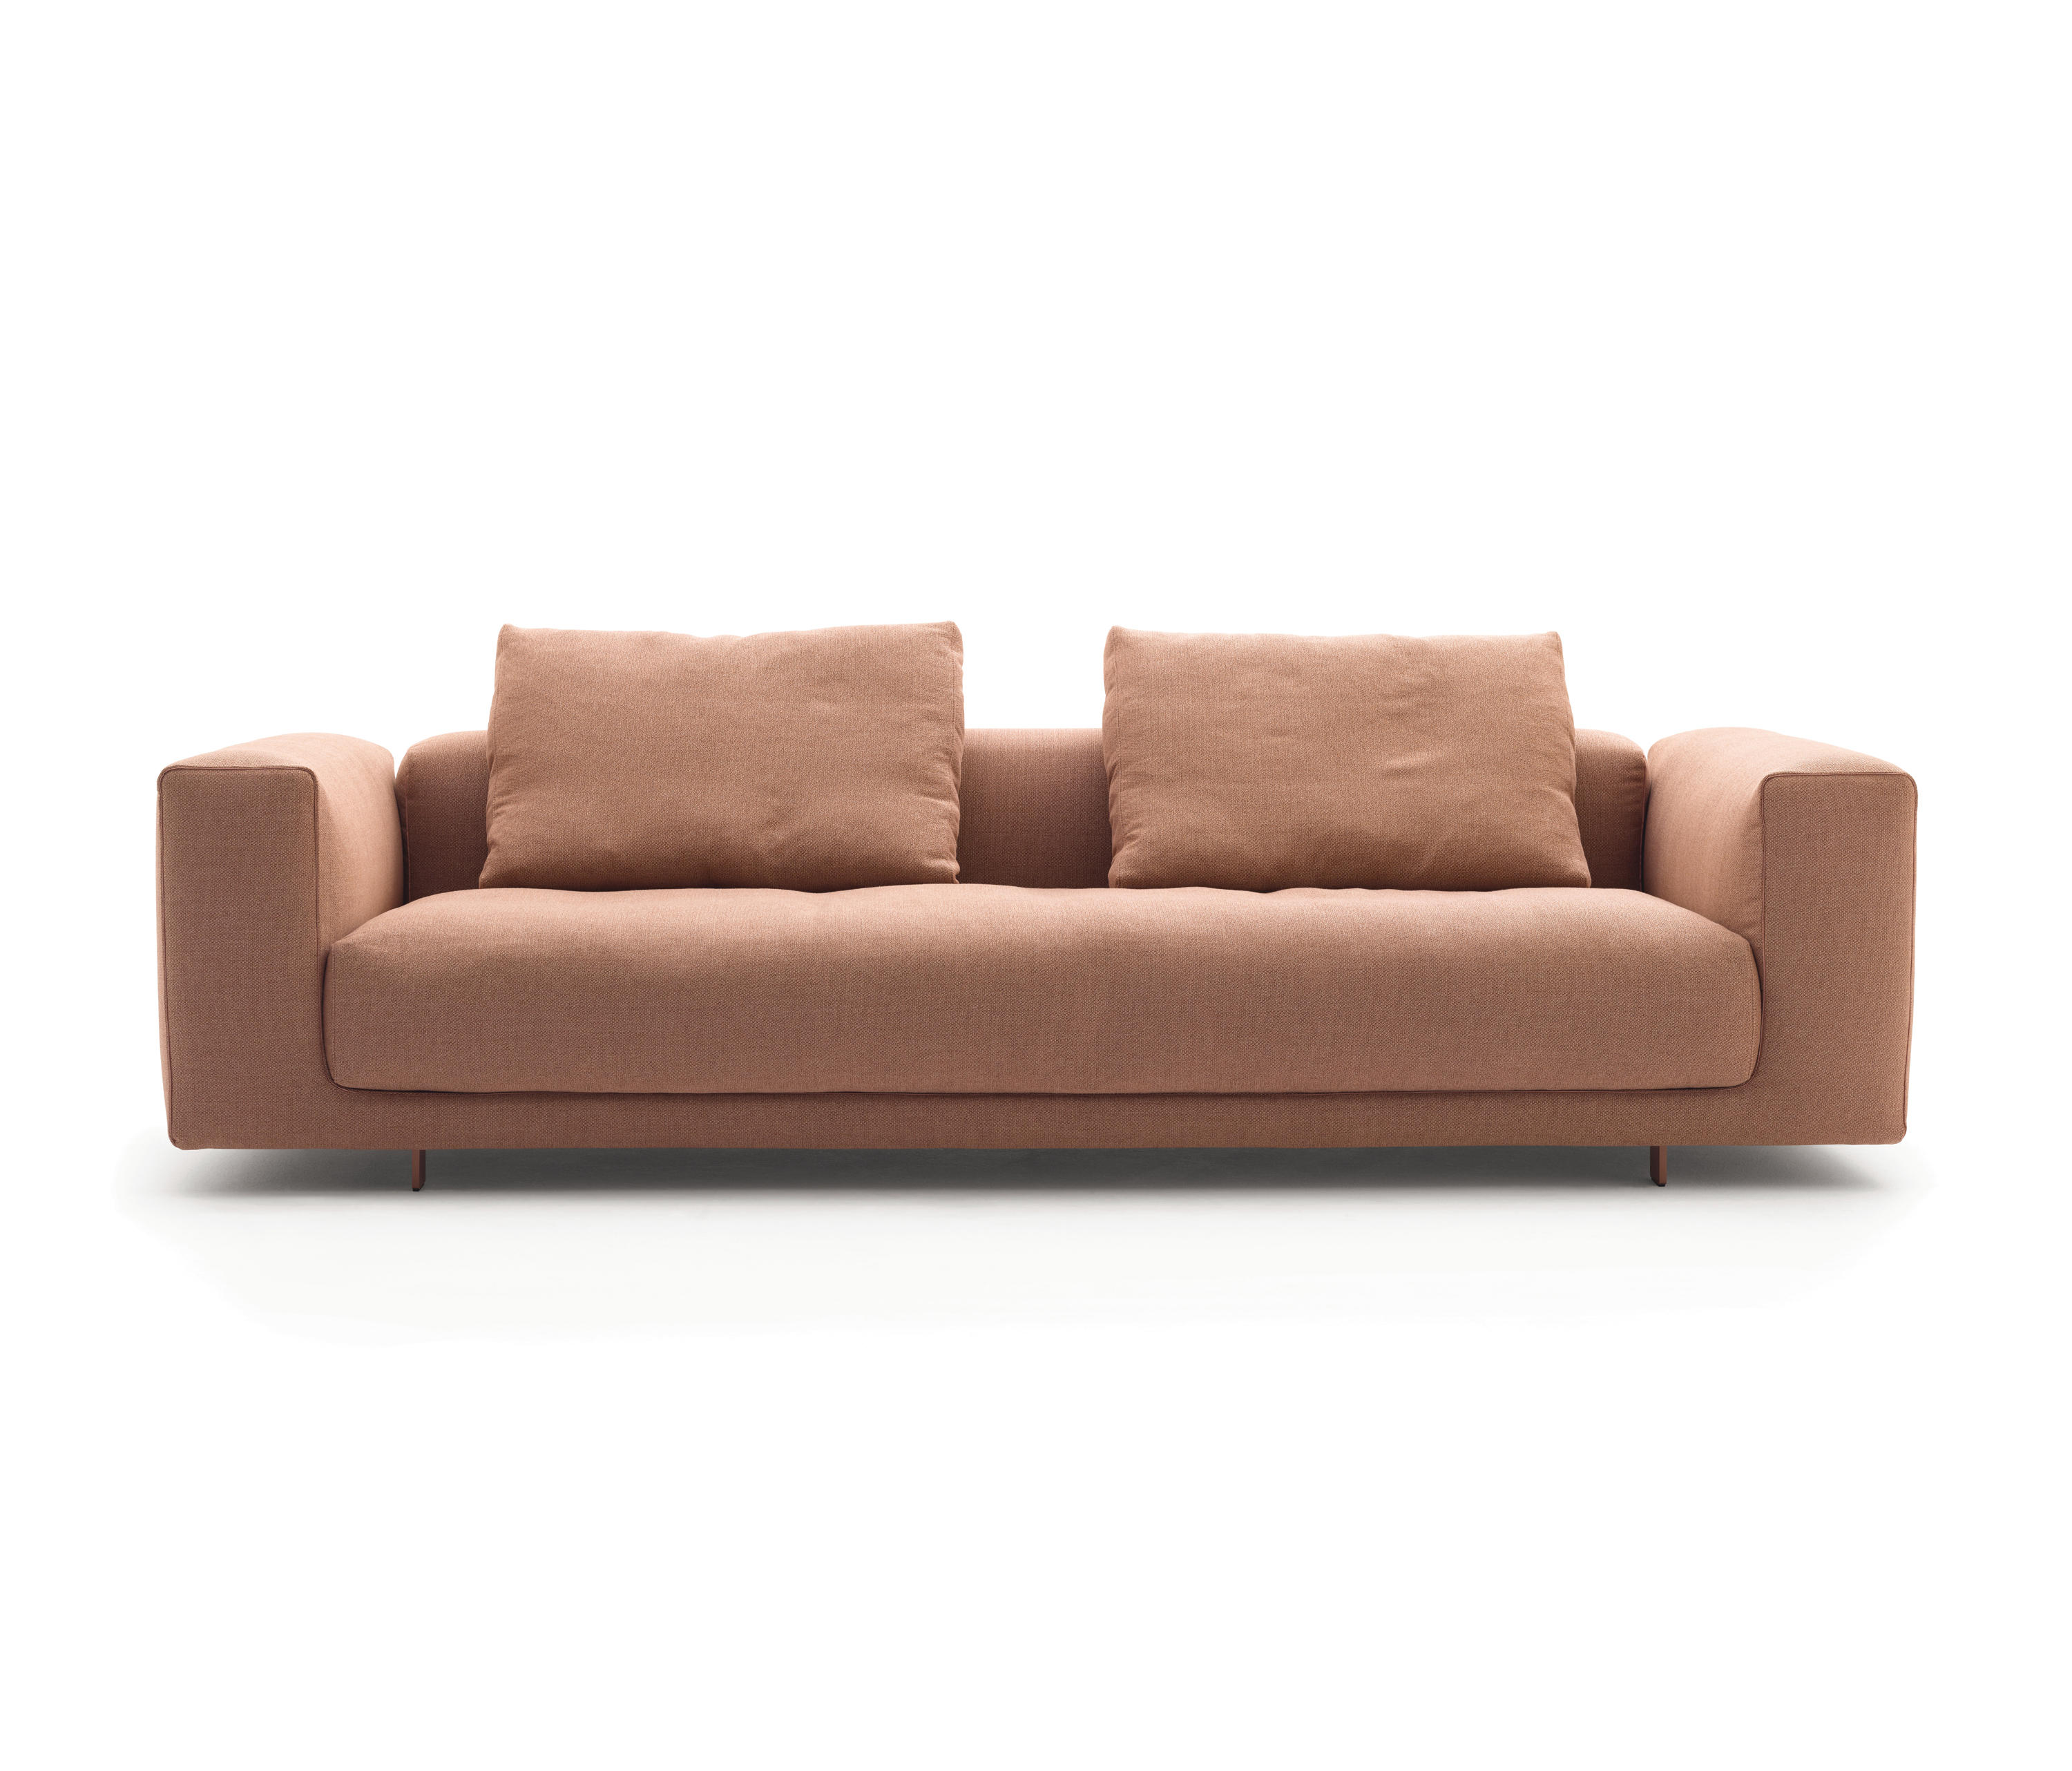 moss studio sofa reviews dry clean covers at home cor products collections and more architonic new